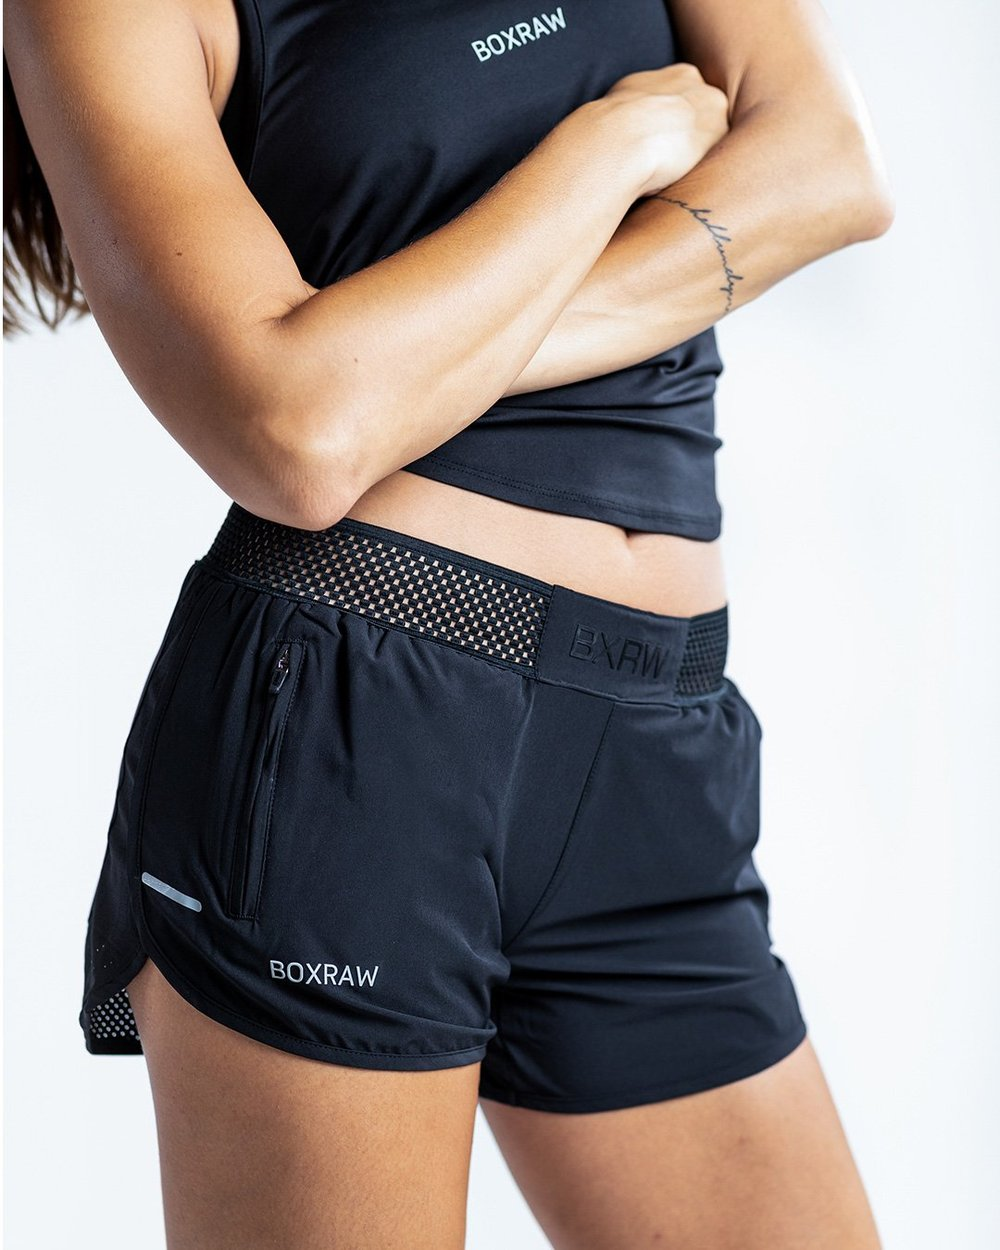 WOMEN'S LAILA SHORTS - BLACK - Pandemic Fight Gear Inc.